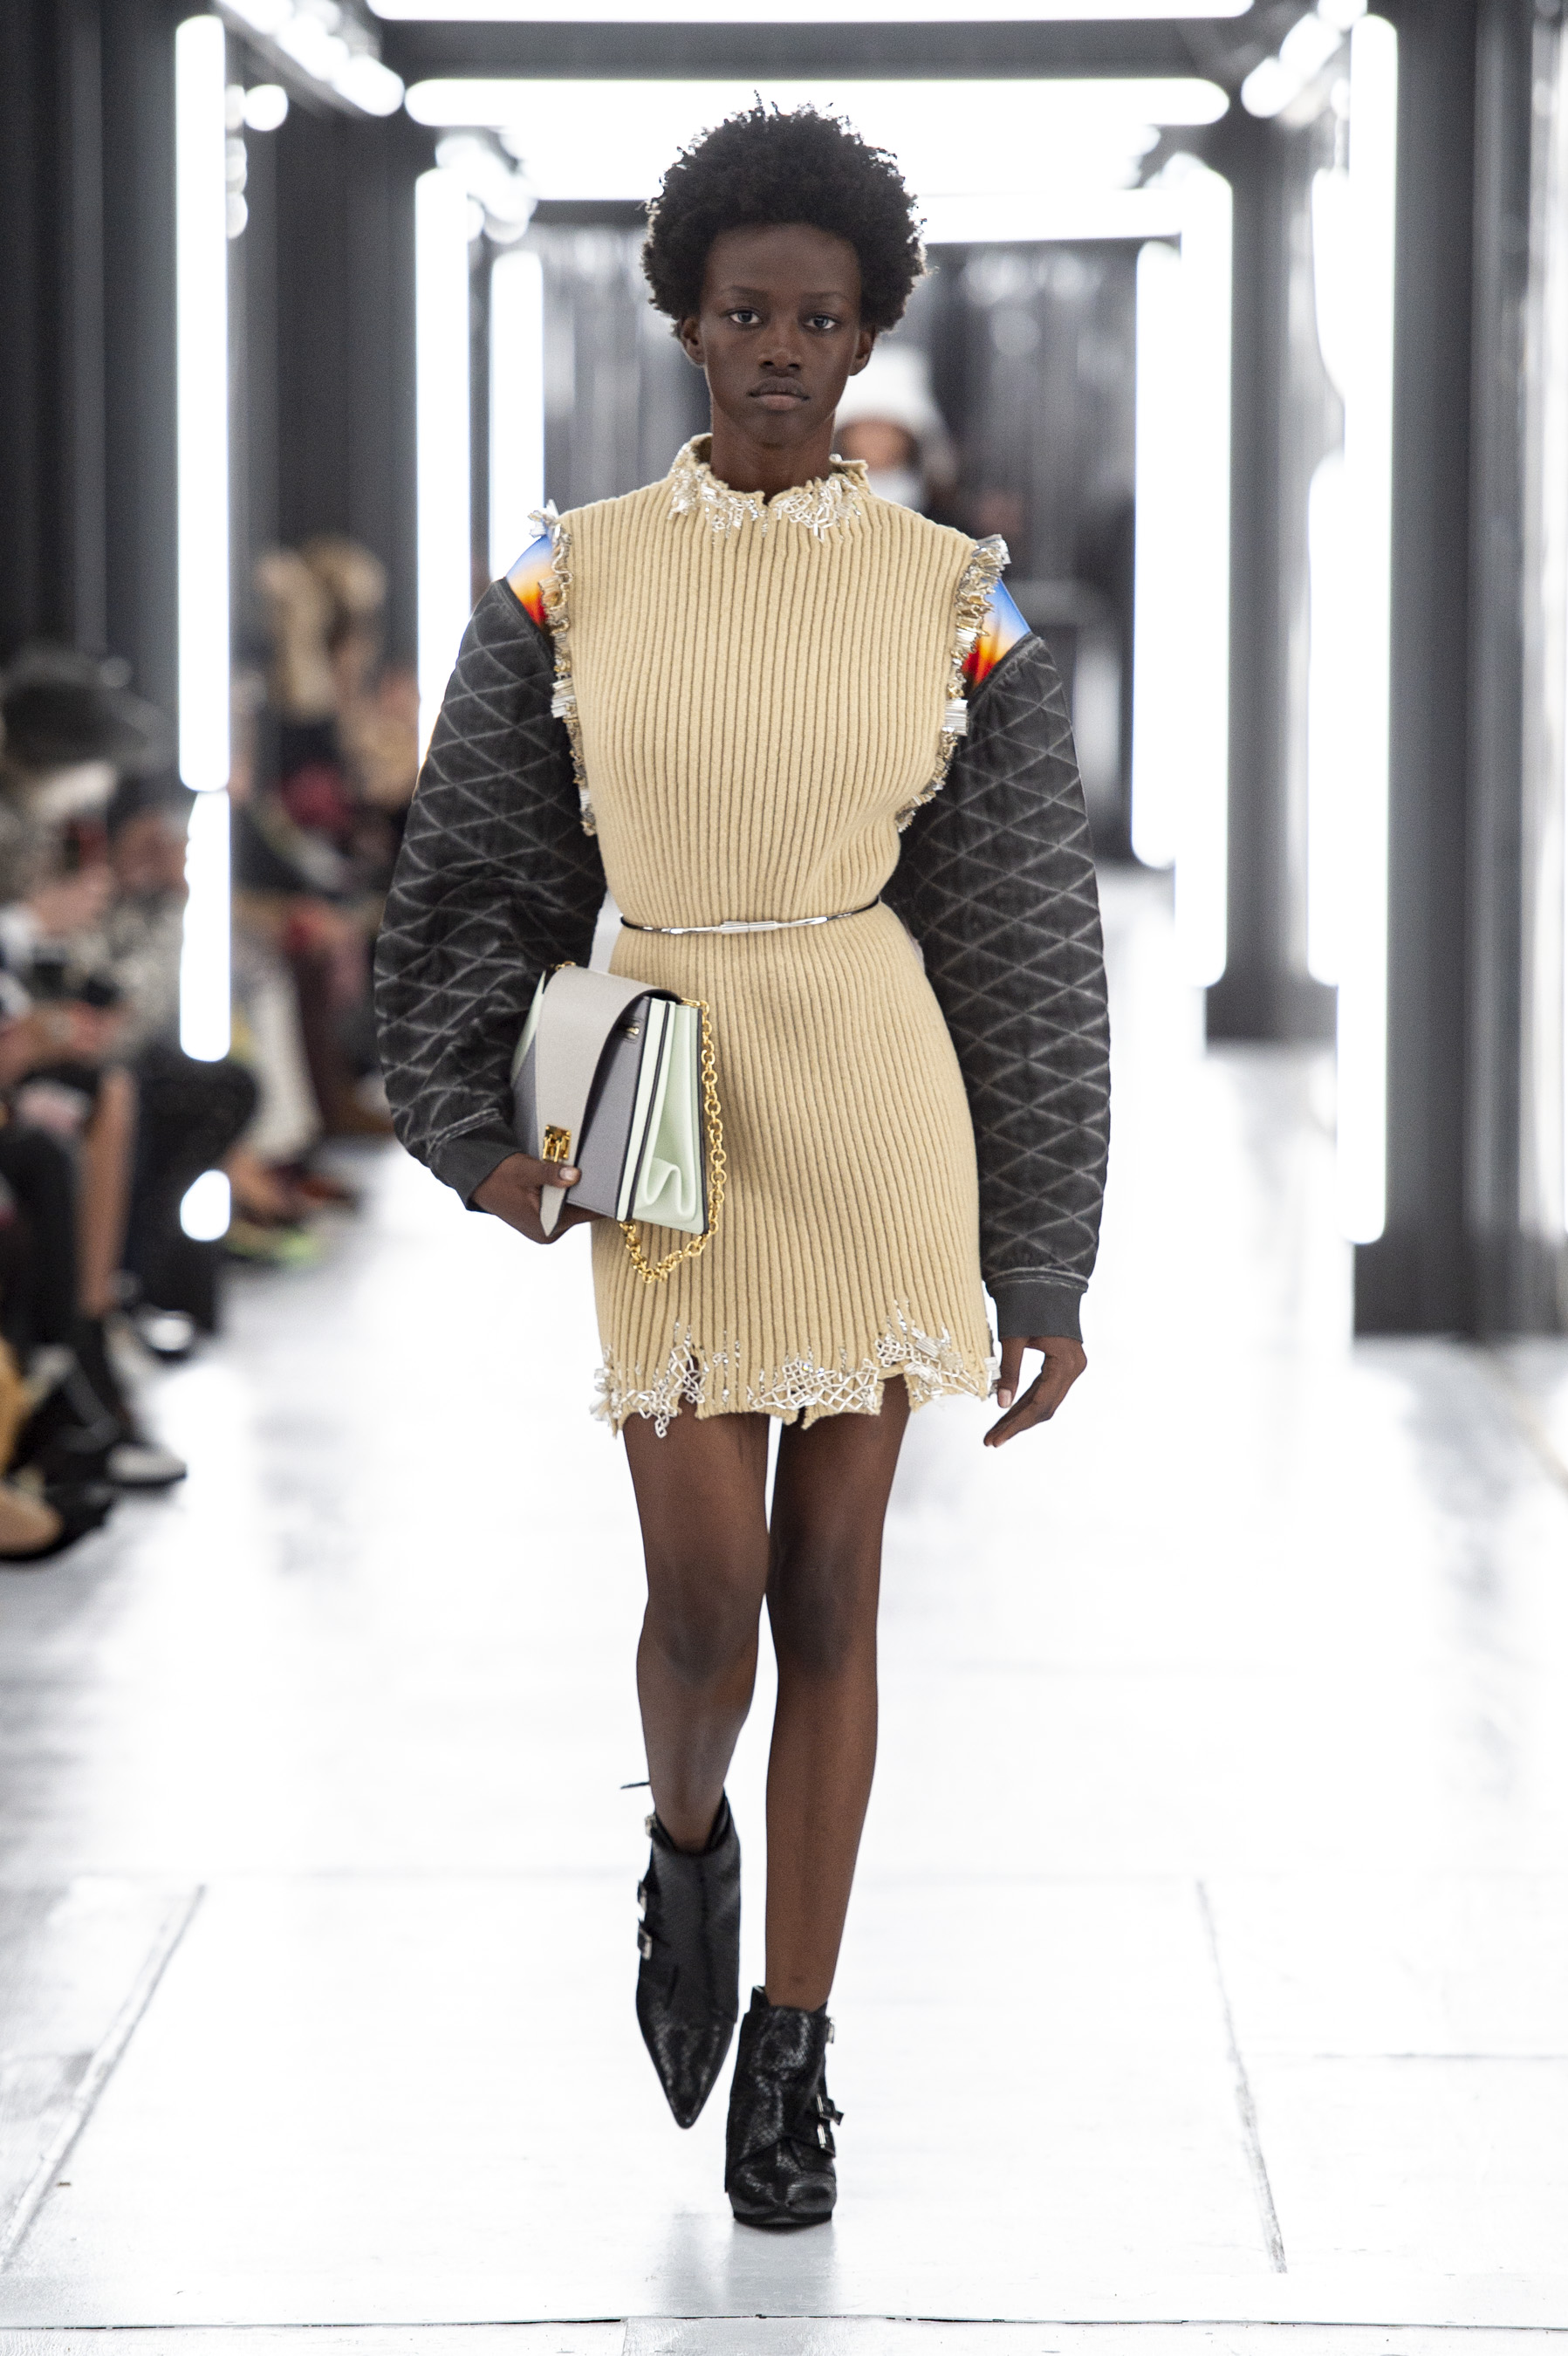 Louis Vuitton Spring 2019 Fashion Show